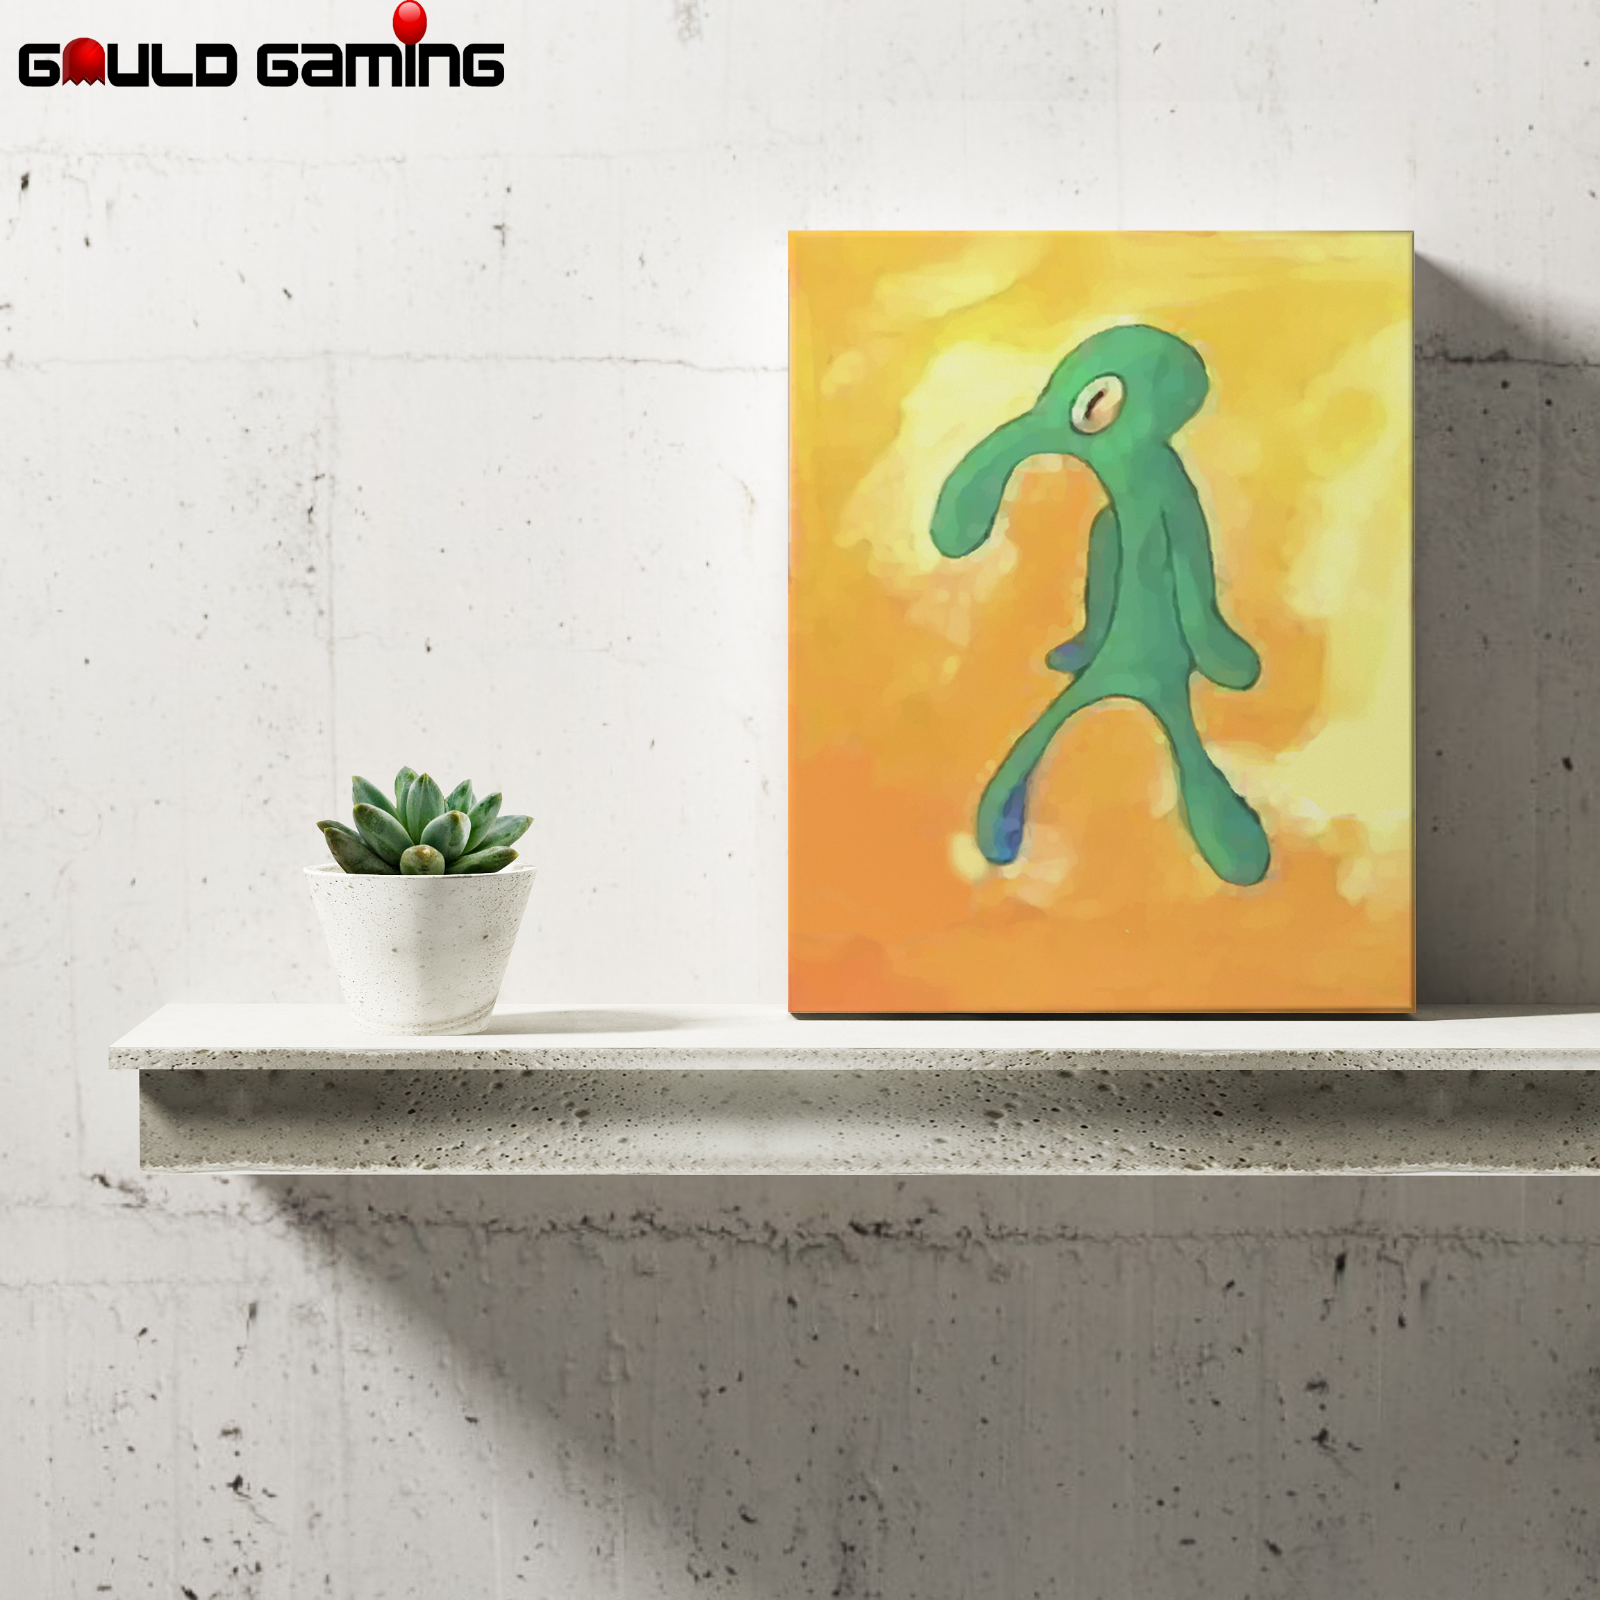 Bold and Brash Squidward Canvas Art Painting Wall Prints Decor Gifts Spongebob